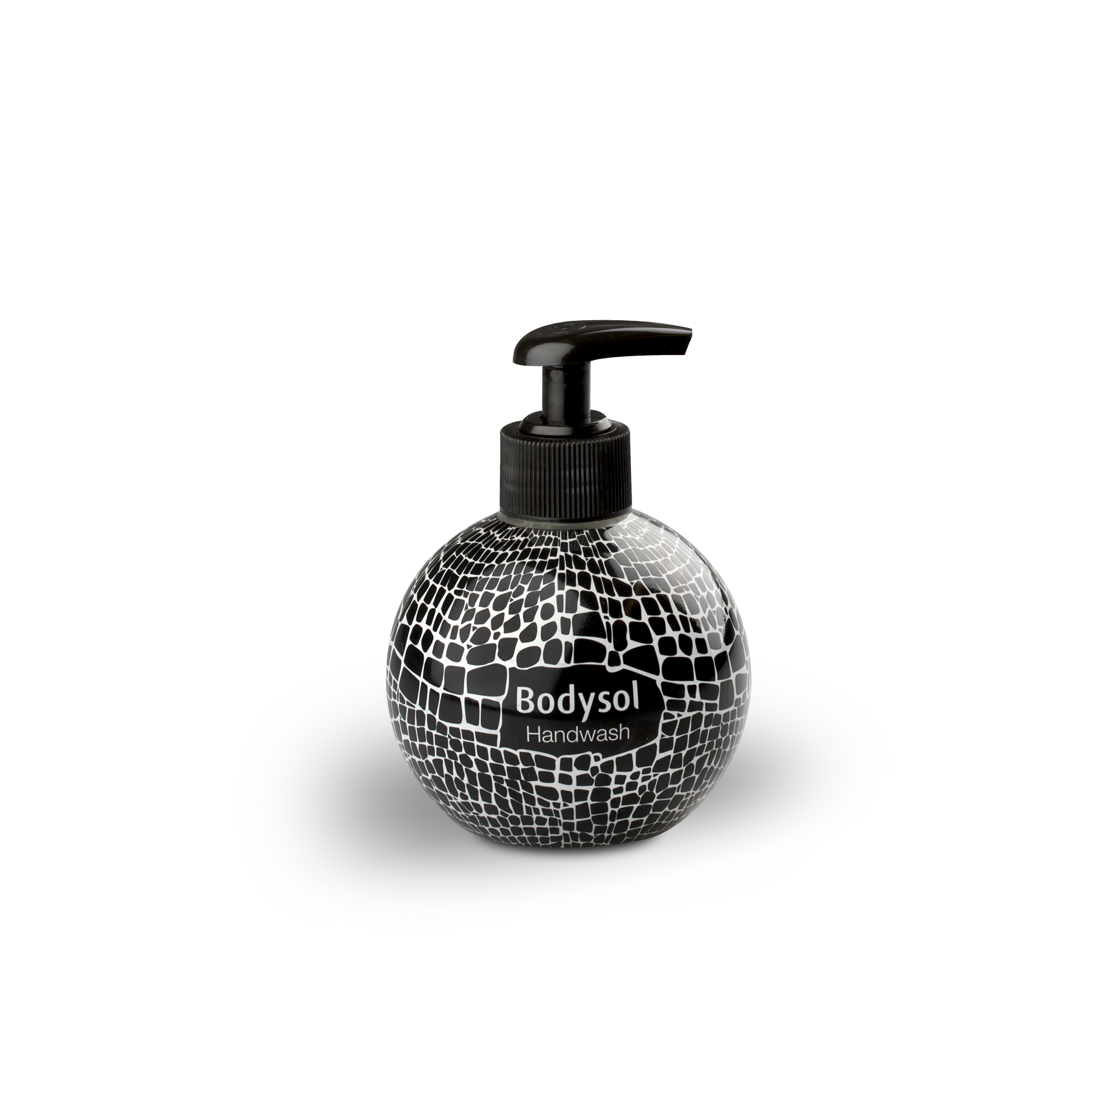 Bodysol - Limited Edition Croco - Black - Handwash - €5,99